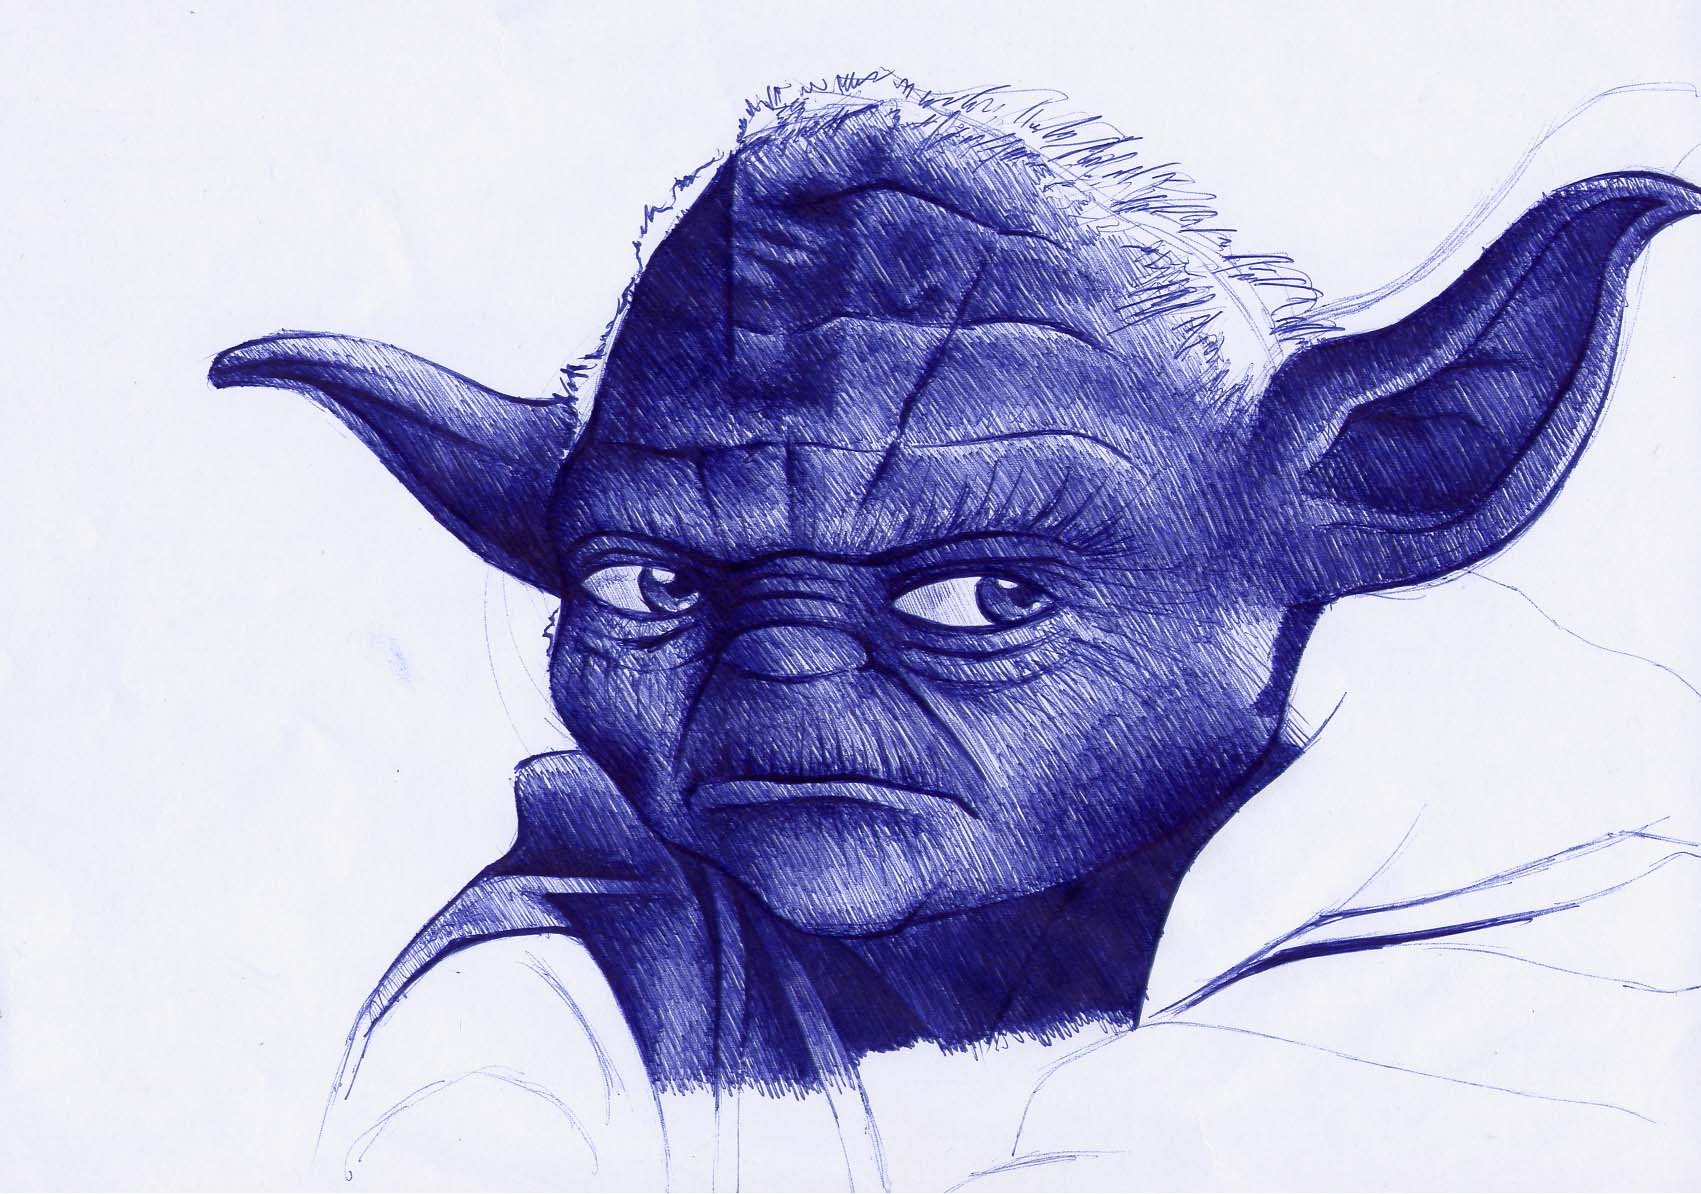 Photo 13 - Yoda [Maxoufett]